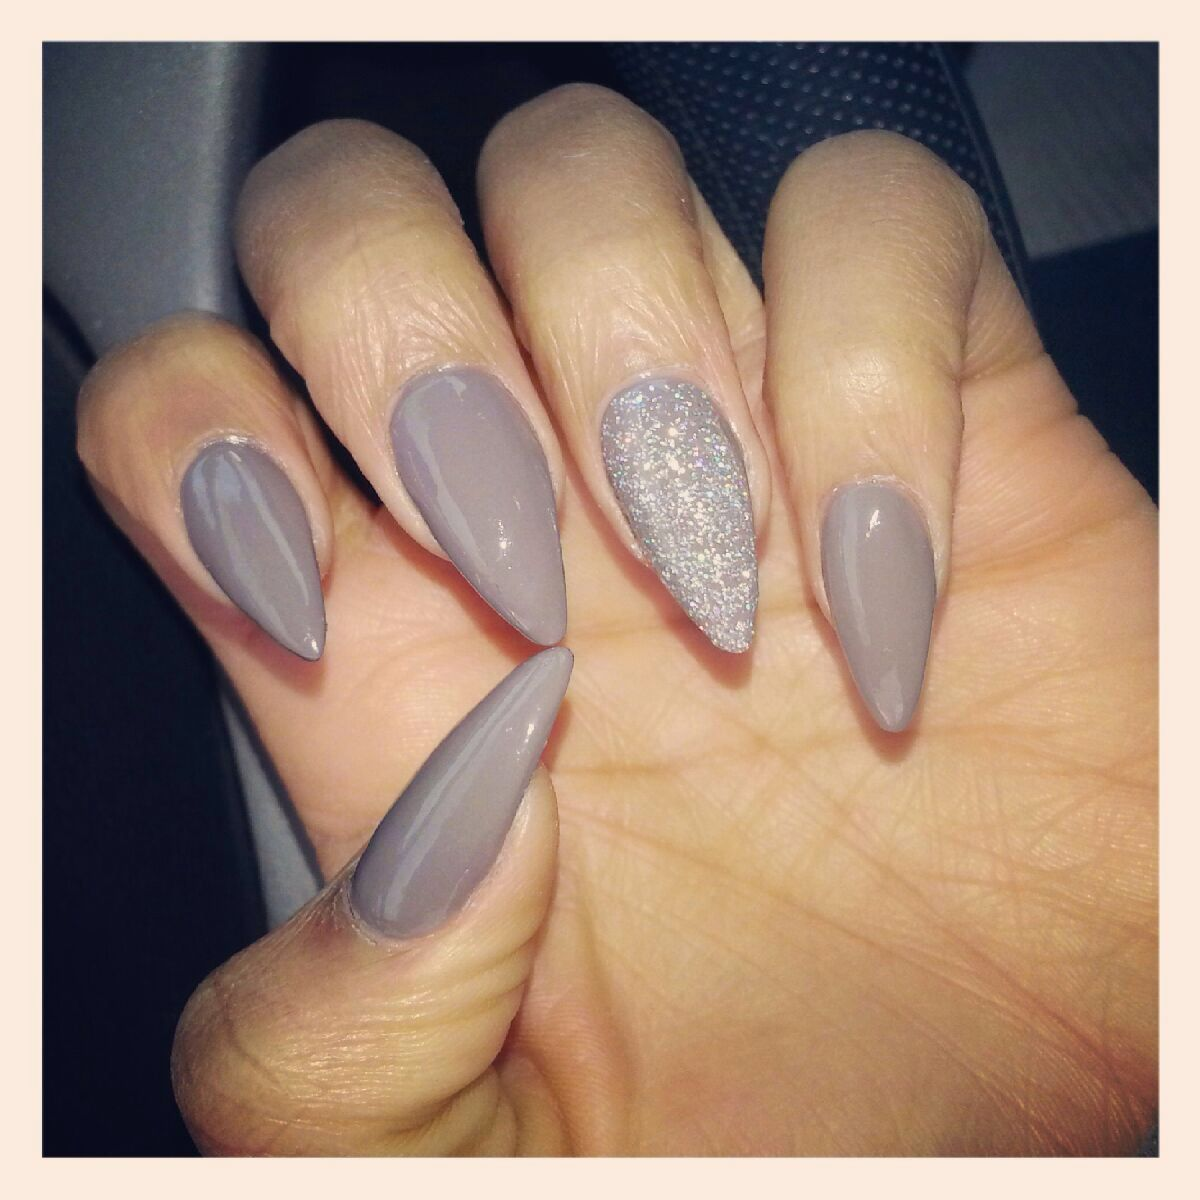 Awesome simple stiletto nails with a sparkle!   Nails   Pinterest ...